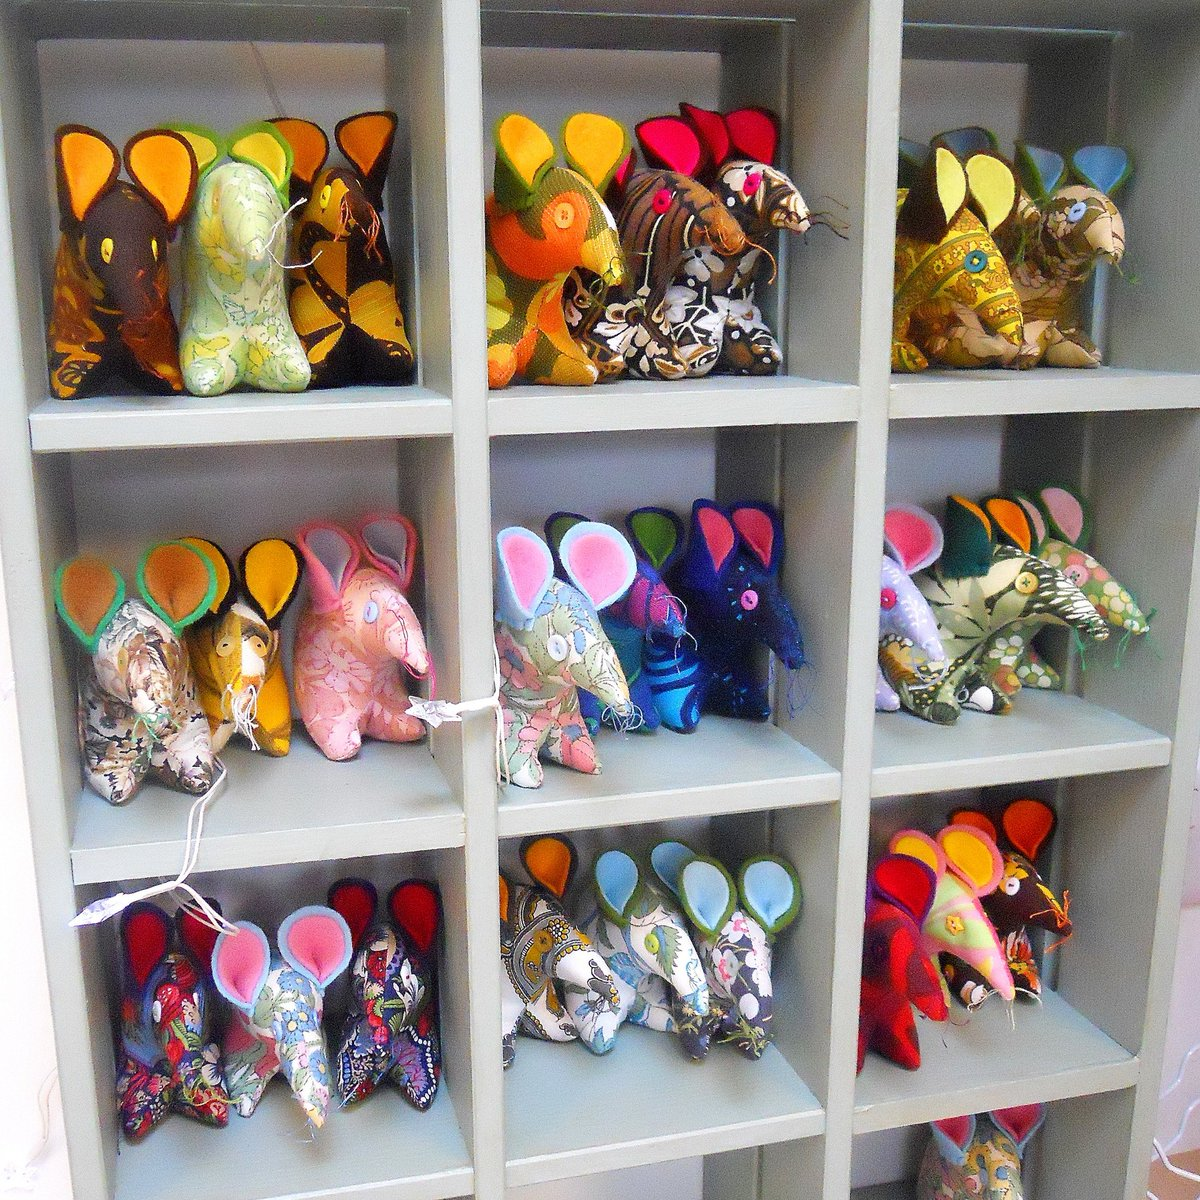 My current stock of mice are now cosily housed in their special cubby hole shelves in my studio ! #vintage #handmade https://t.co/csl7ppk6QH